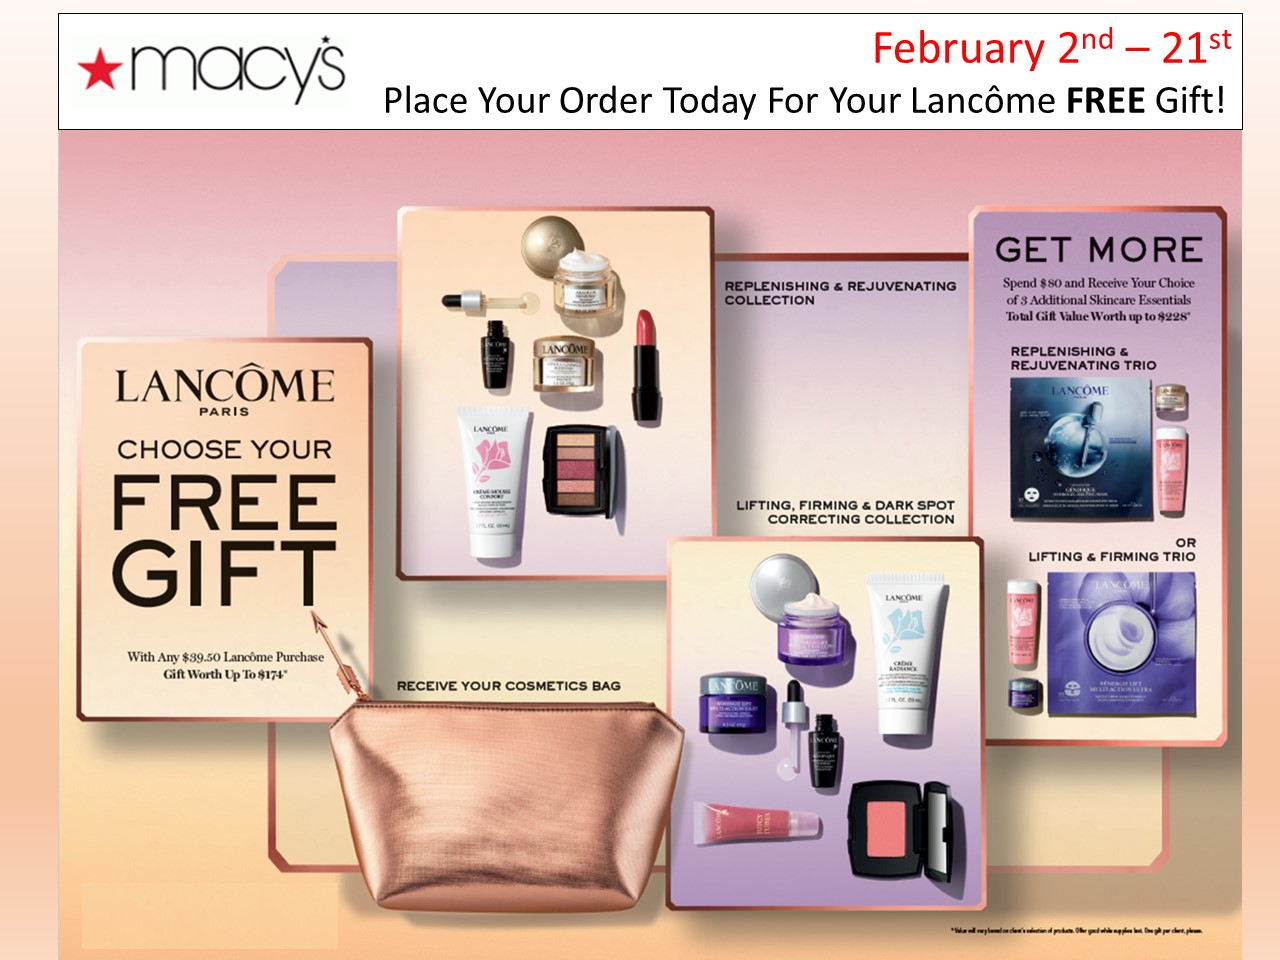 Lancôme Spring 2021 Gift with Purchase Event from macy's